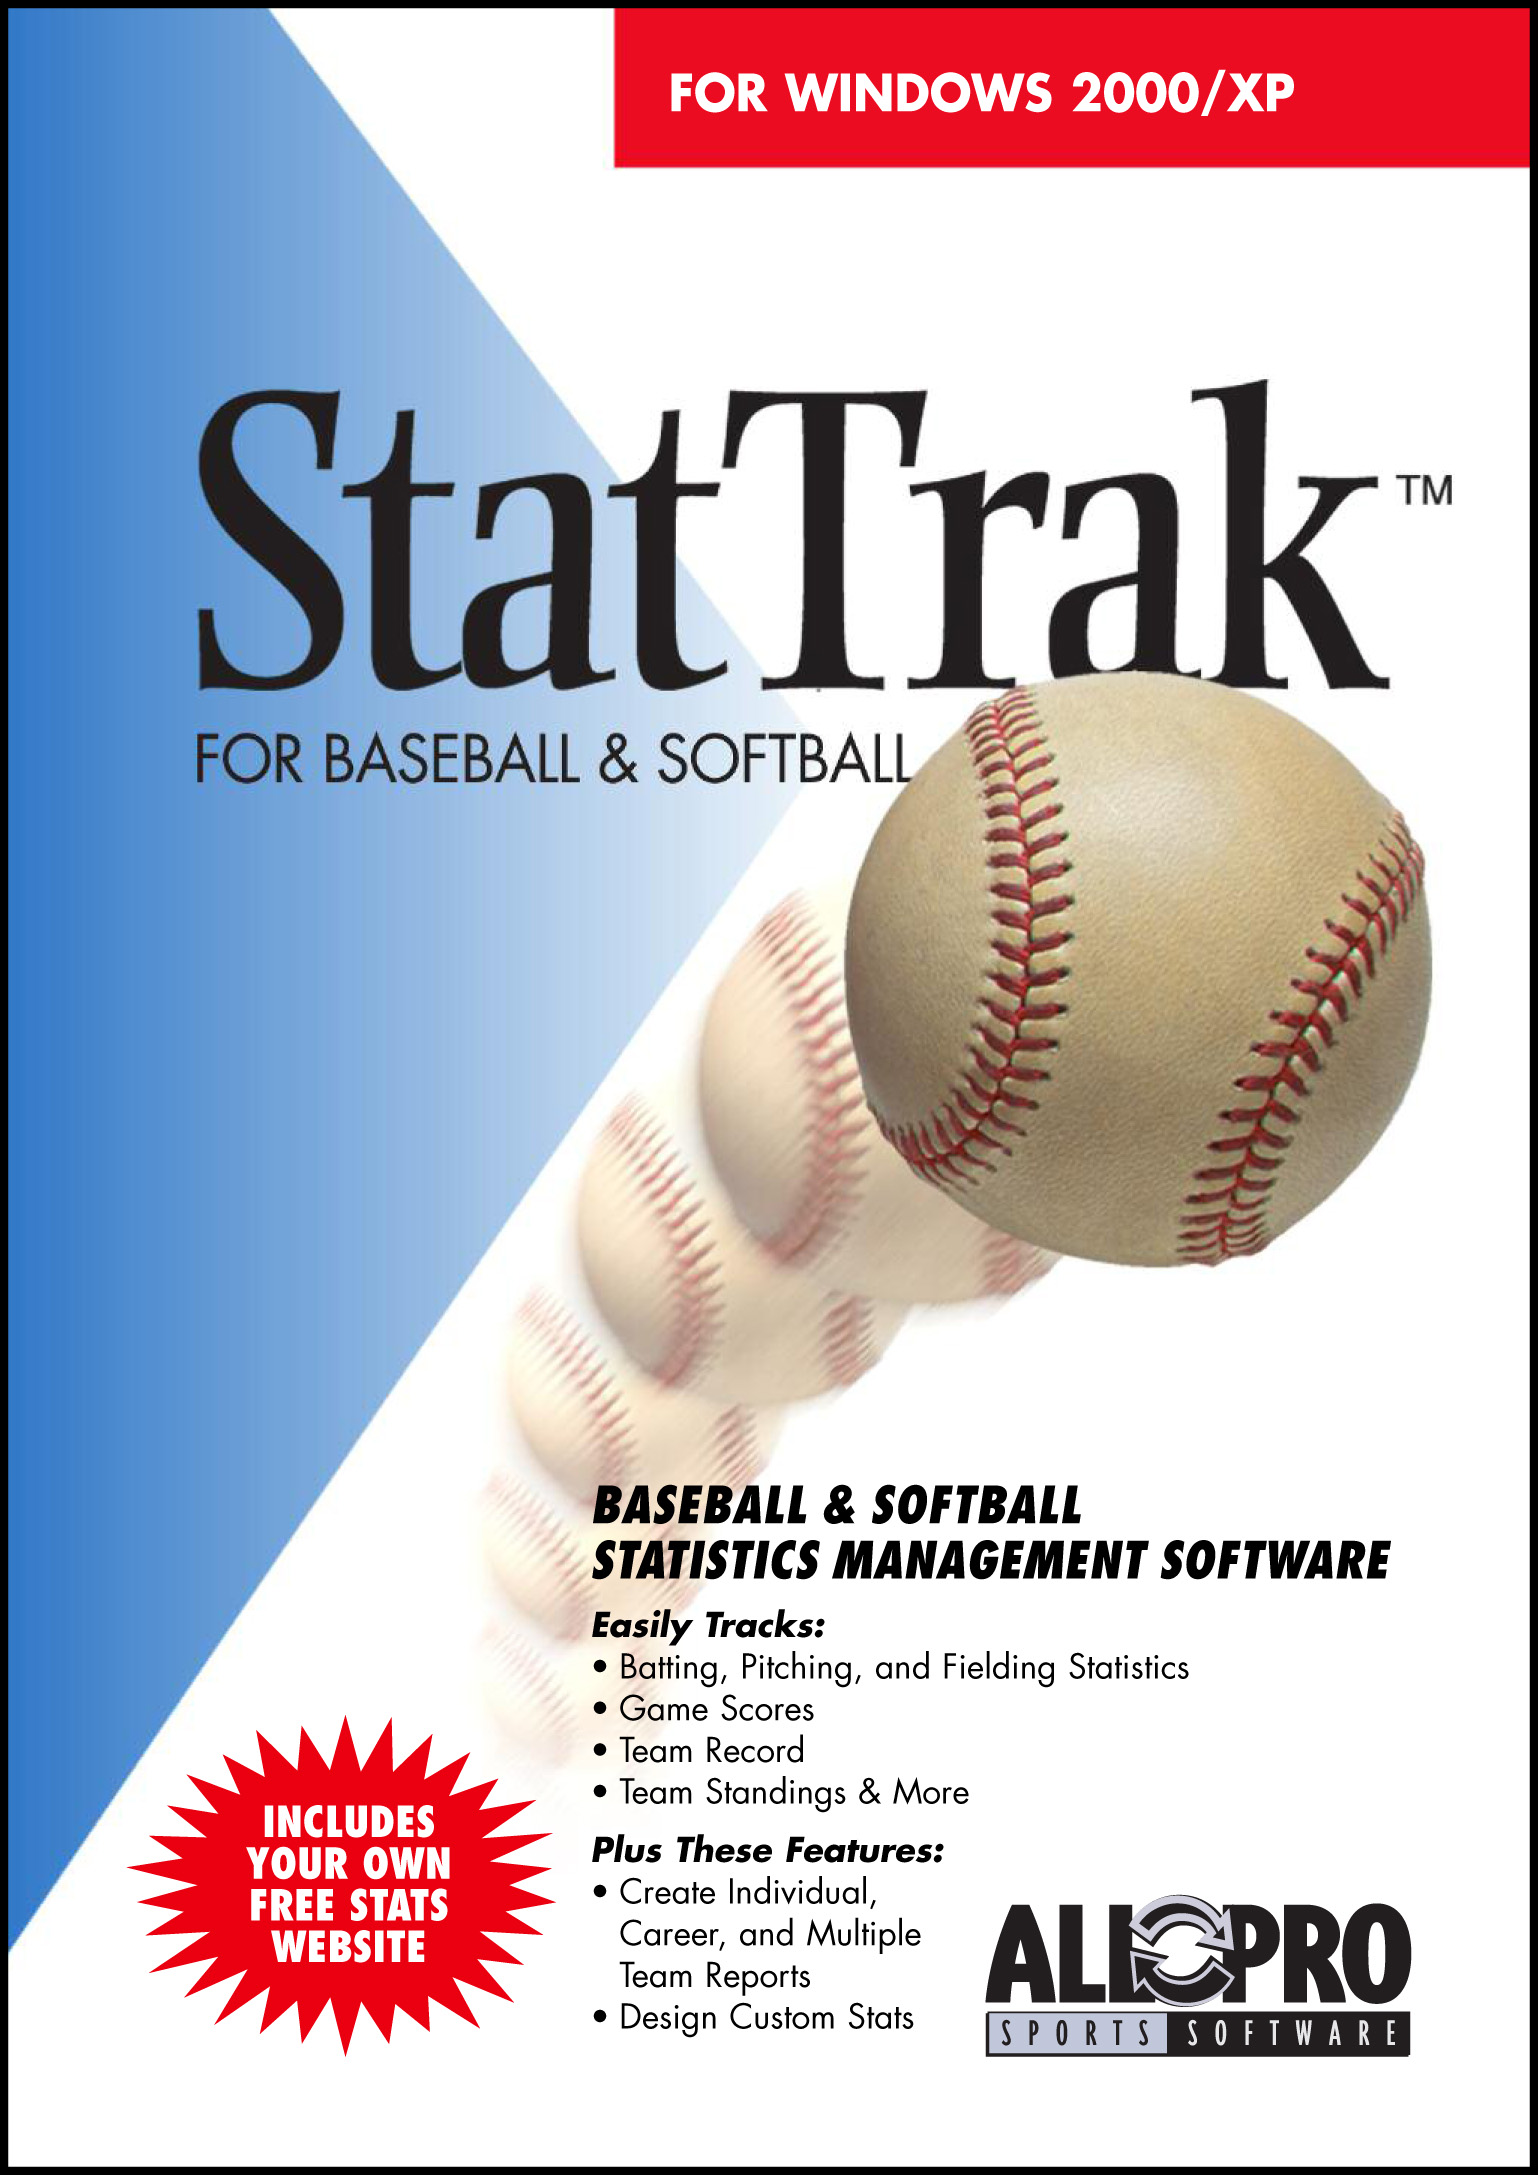 StatTrak for Baseball / Softball